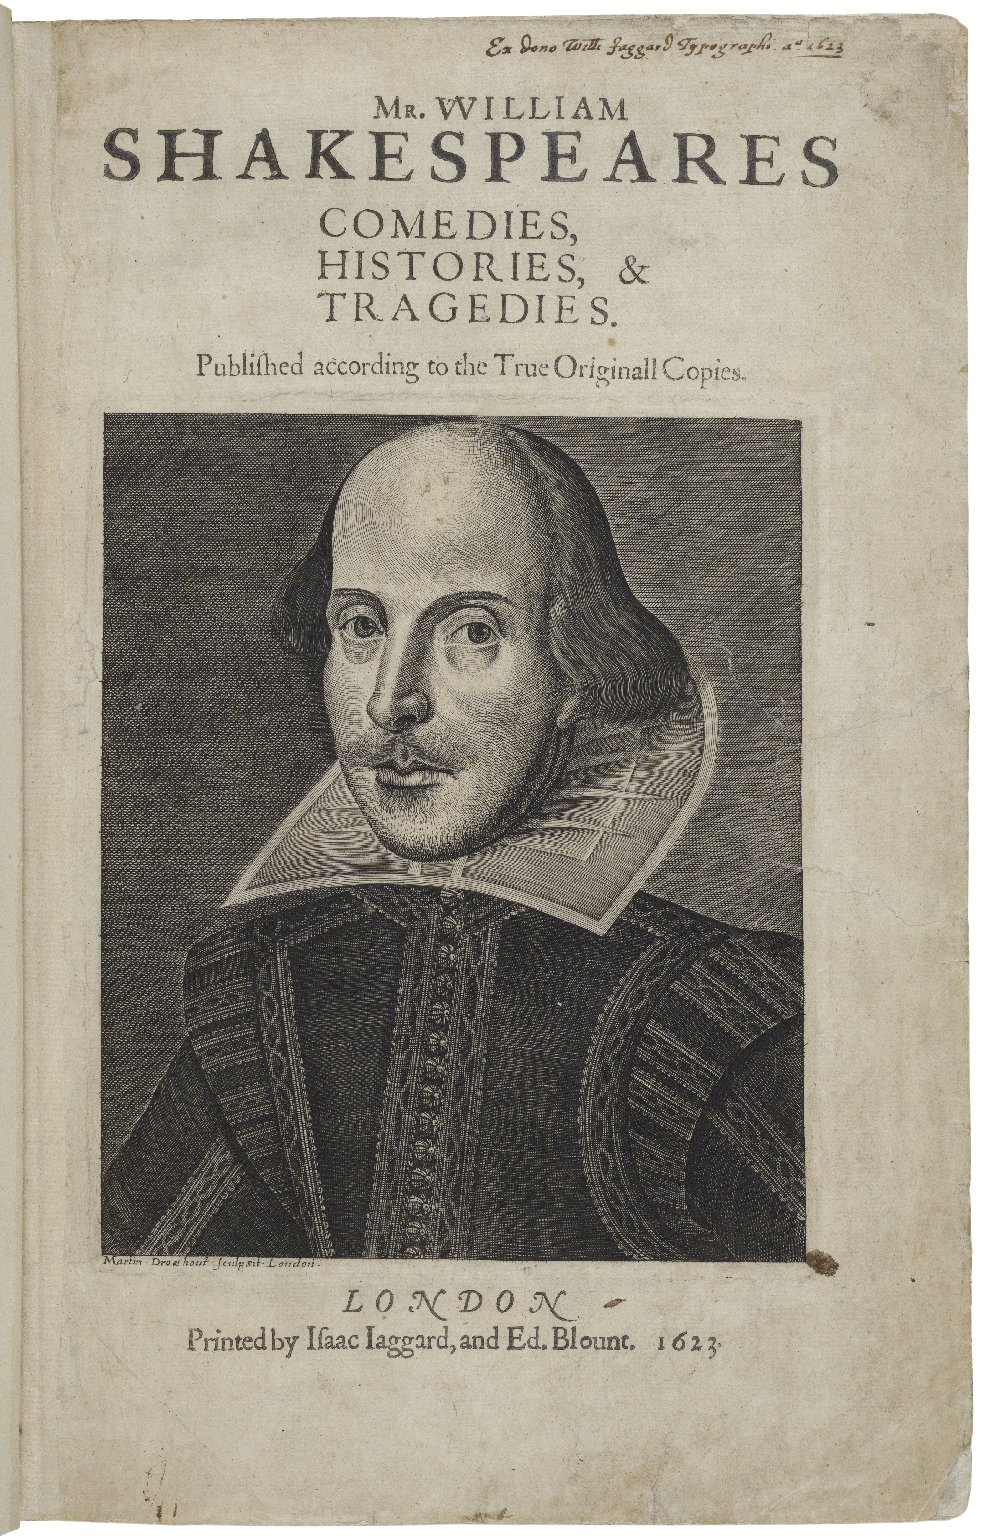 First Folio title page